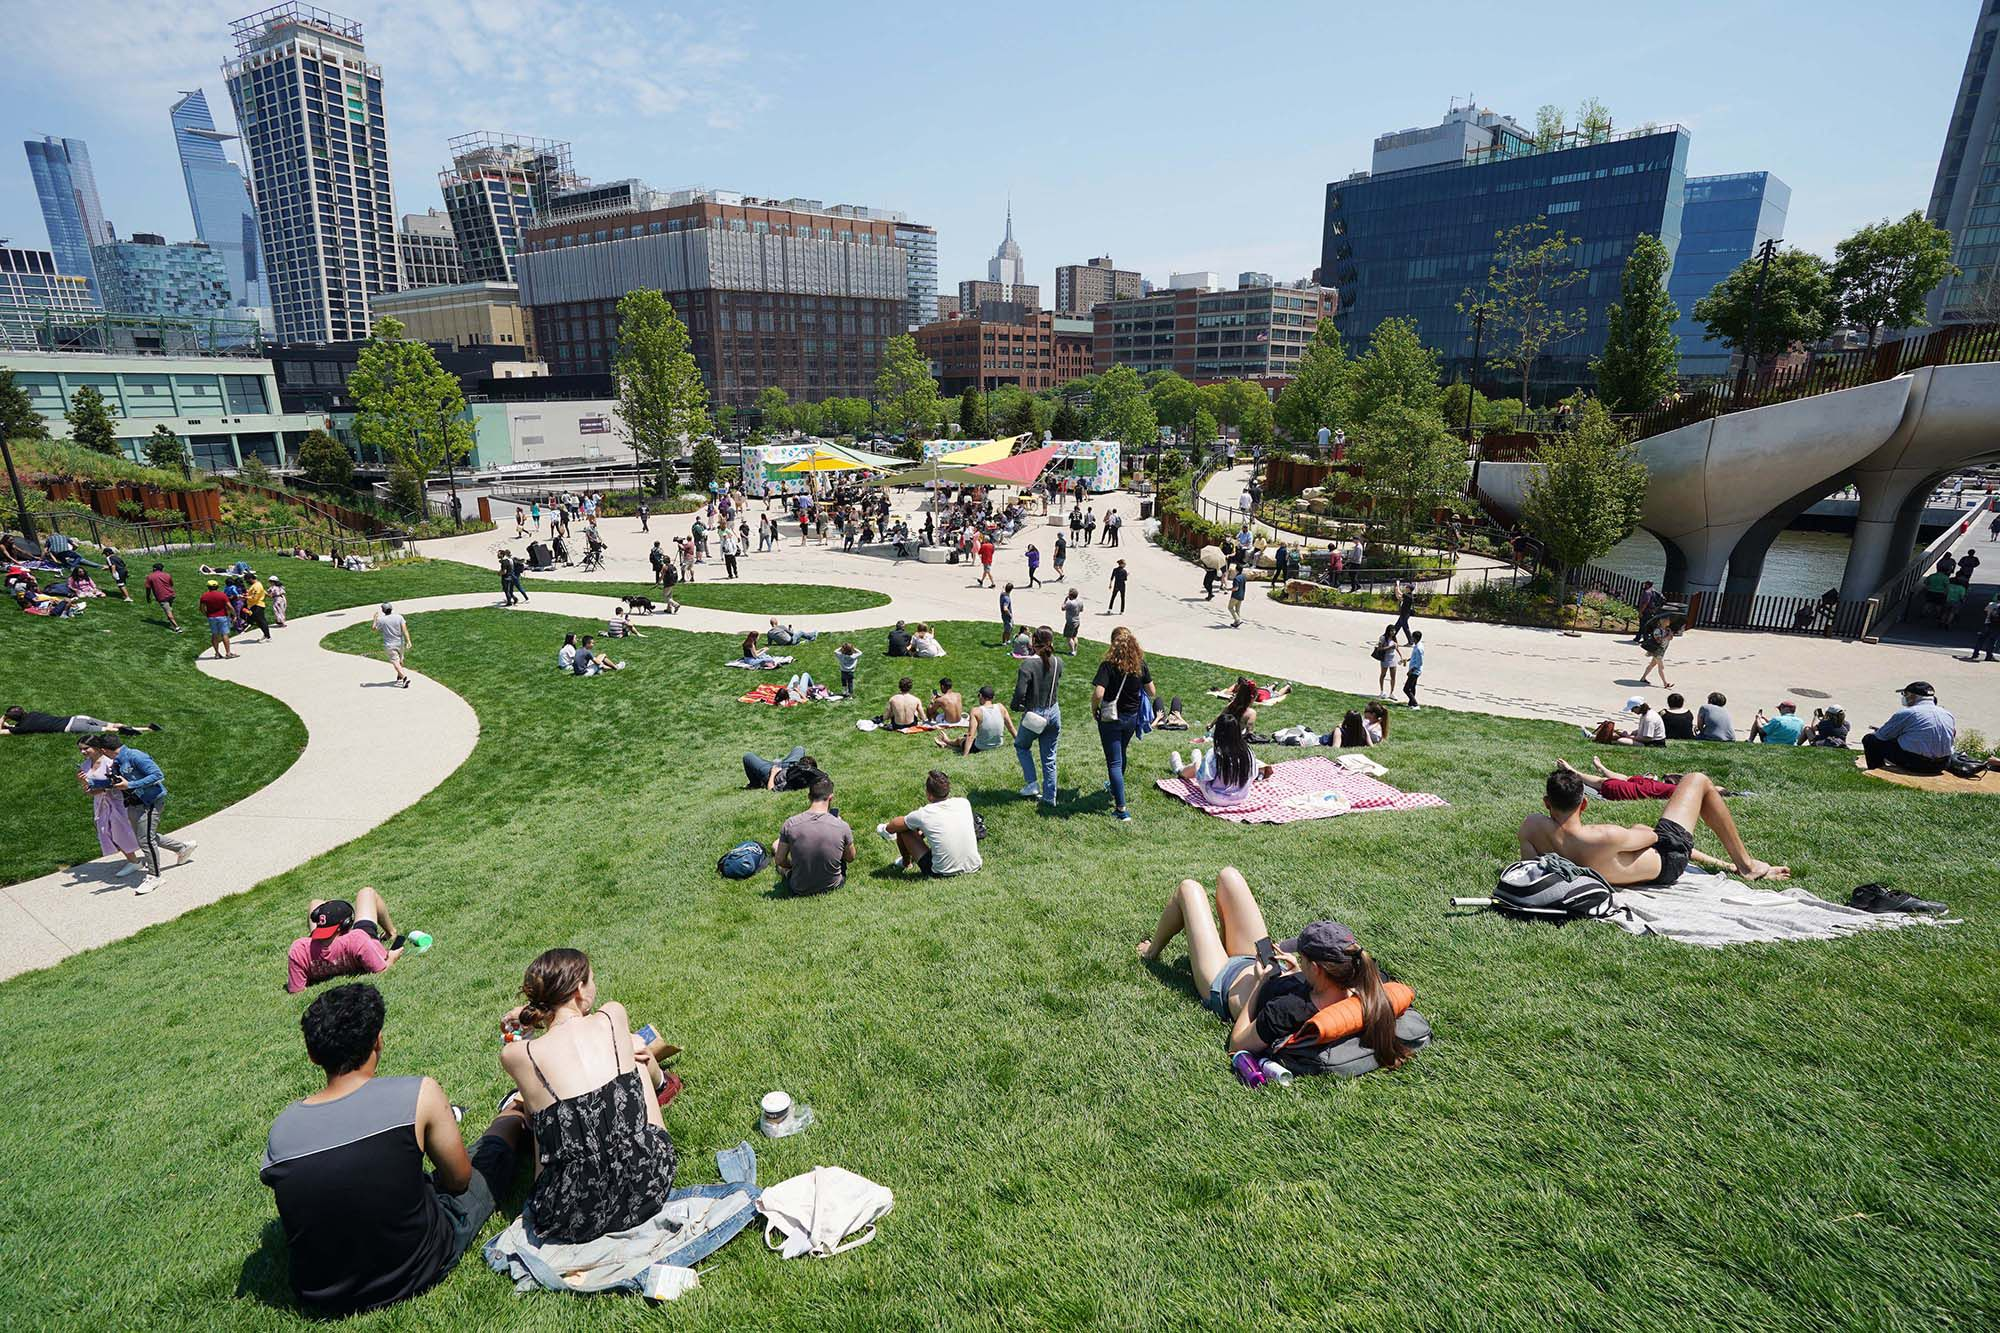 The Park Offers An Island Oasis To City Dwellers